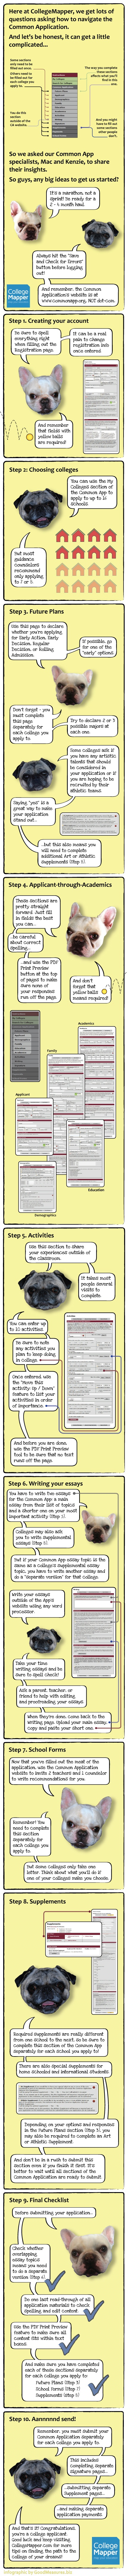 A dog's guide to the Common Application